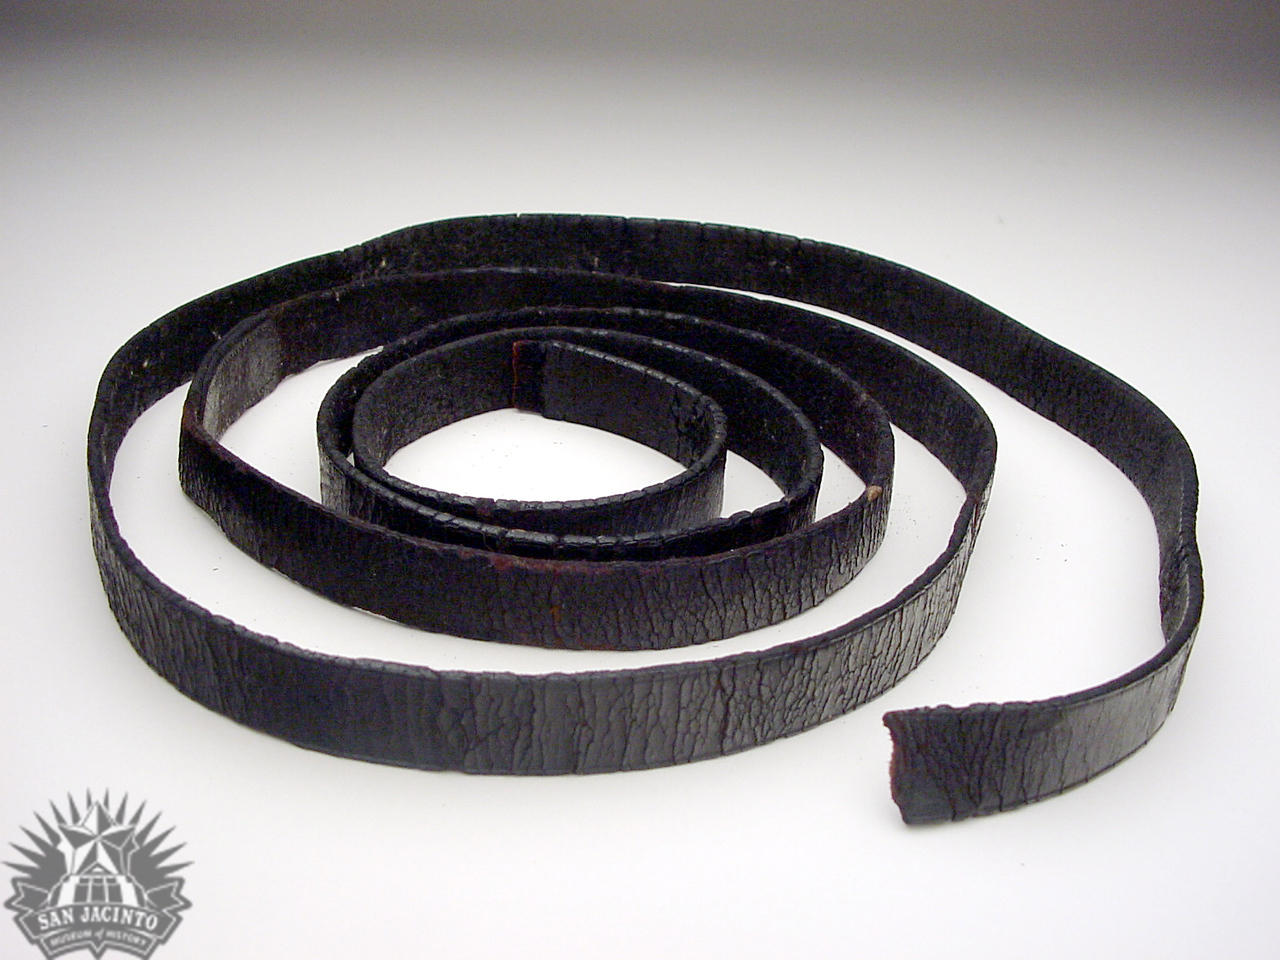 Bridle reins, part of Santa Anna's equipment captured at San Jacinto.  Acquired by Sidney Sherman after the battle.